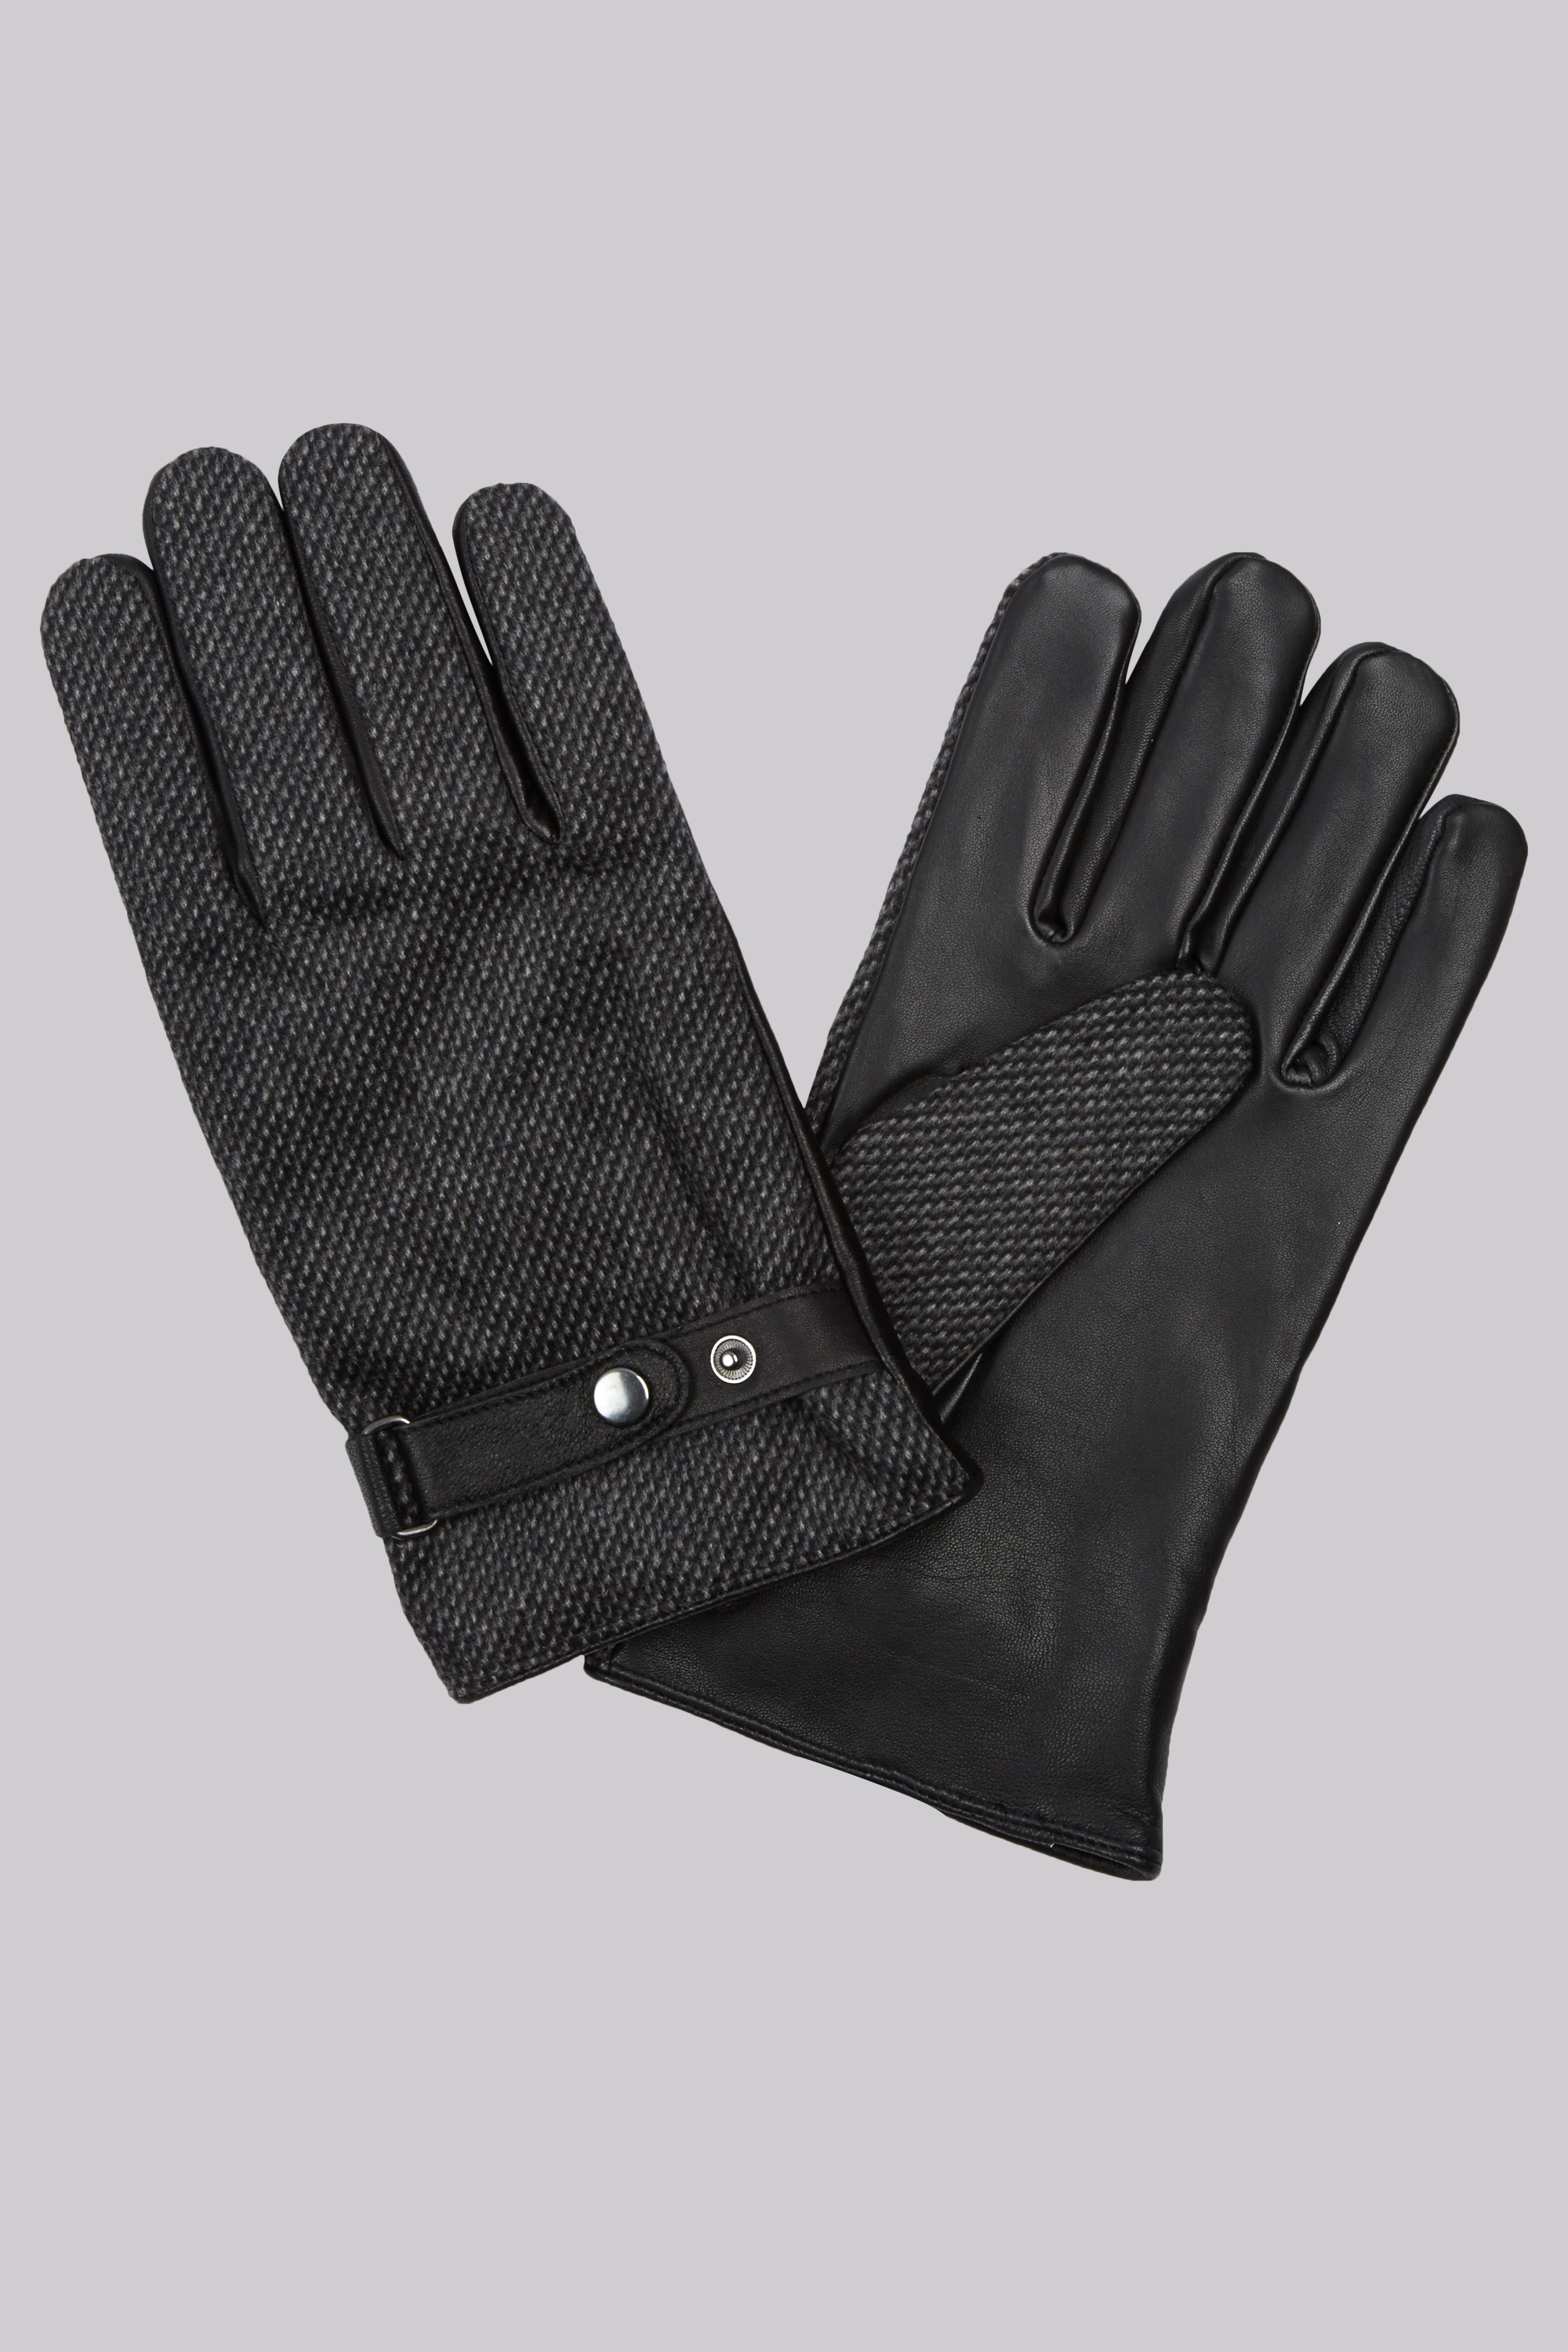 Moss Bros Moss 1851 Black Fabric Backed Leather Strap Gloves